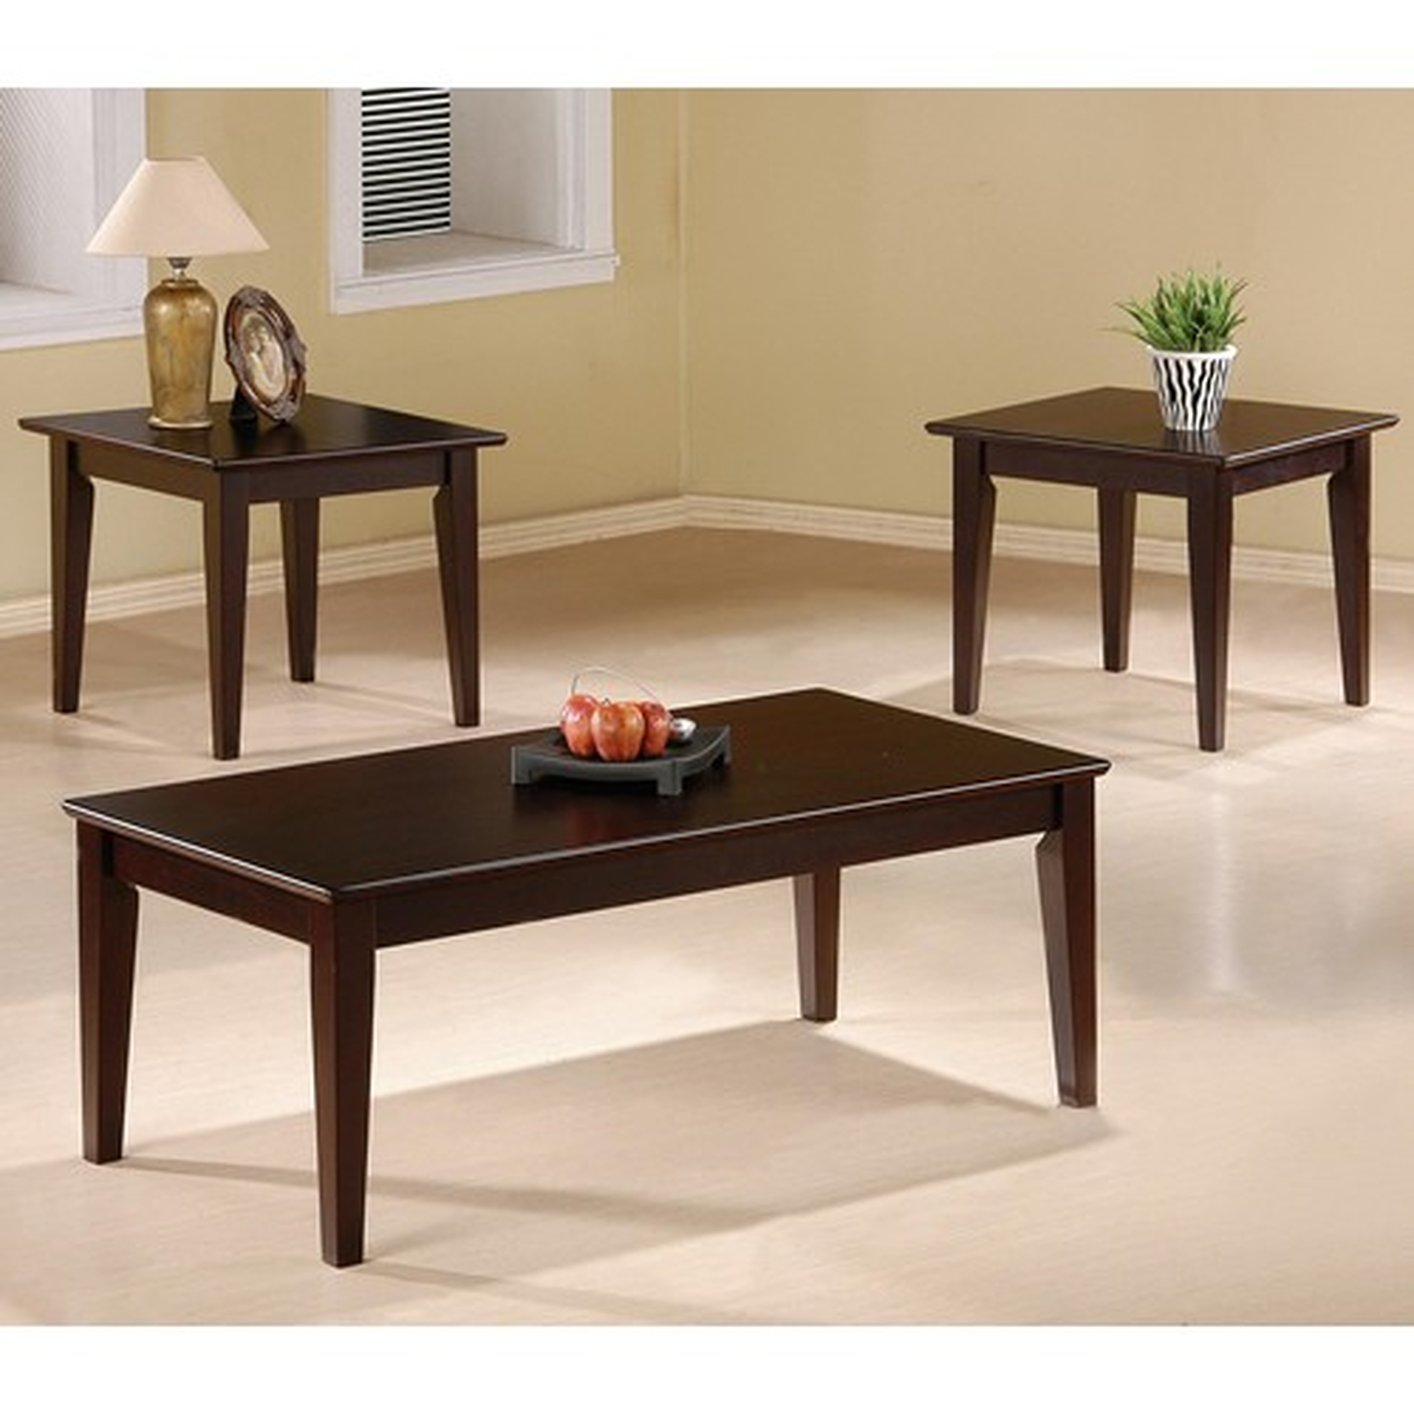 cce70b147b235 Brown Wood Coffee Table Set - Steal-A-Sofa Furniture Outlet Los Angeles CA